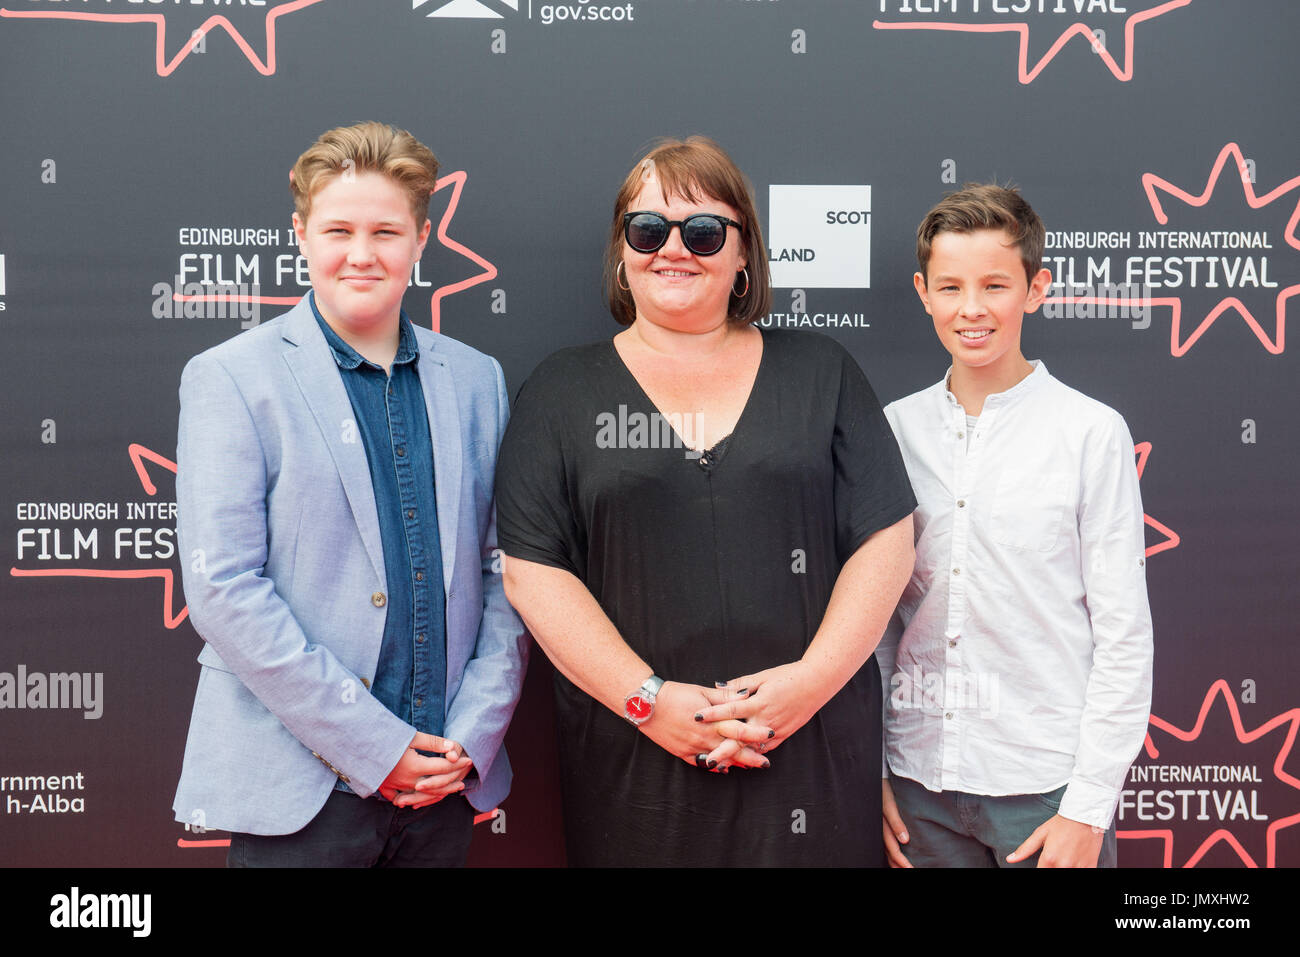 WWW.IANGEORGESONPHOTOGRAPHY.CO.UK Picture: Sam Cox, Claire Downes, Toby Haste RED CARPET Cineworld Fountian Park, Claire Downes (dir) TITLE: WE CAN B - Stock Image